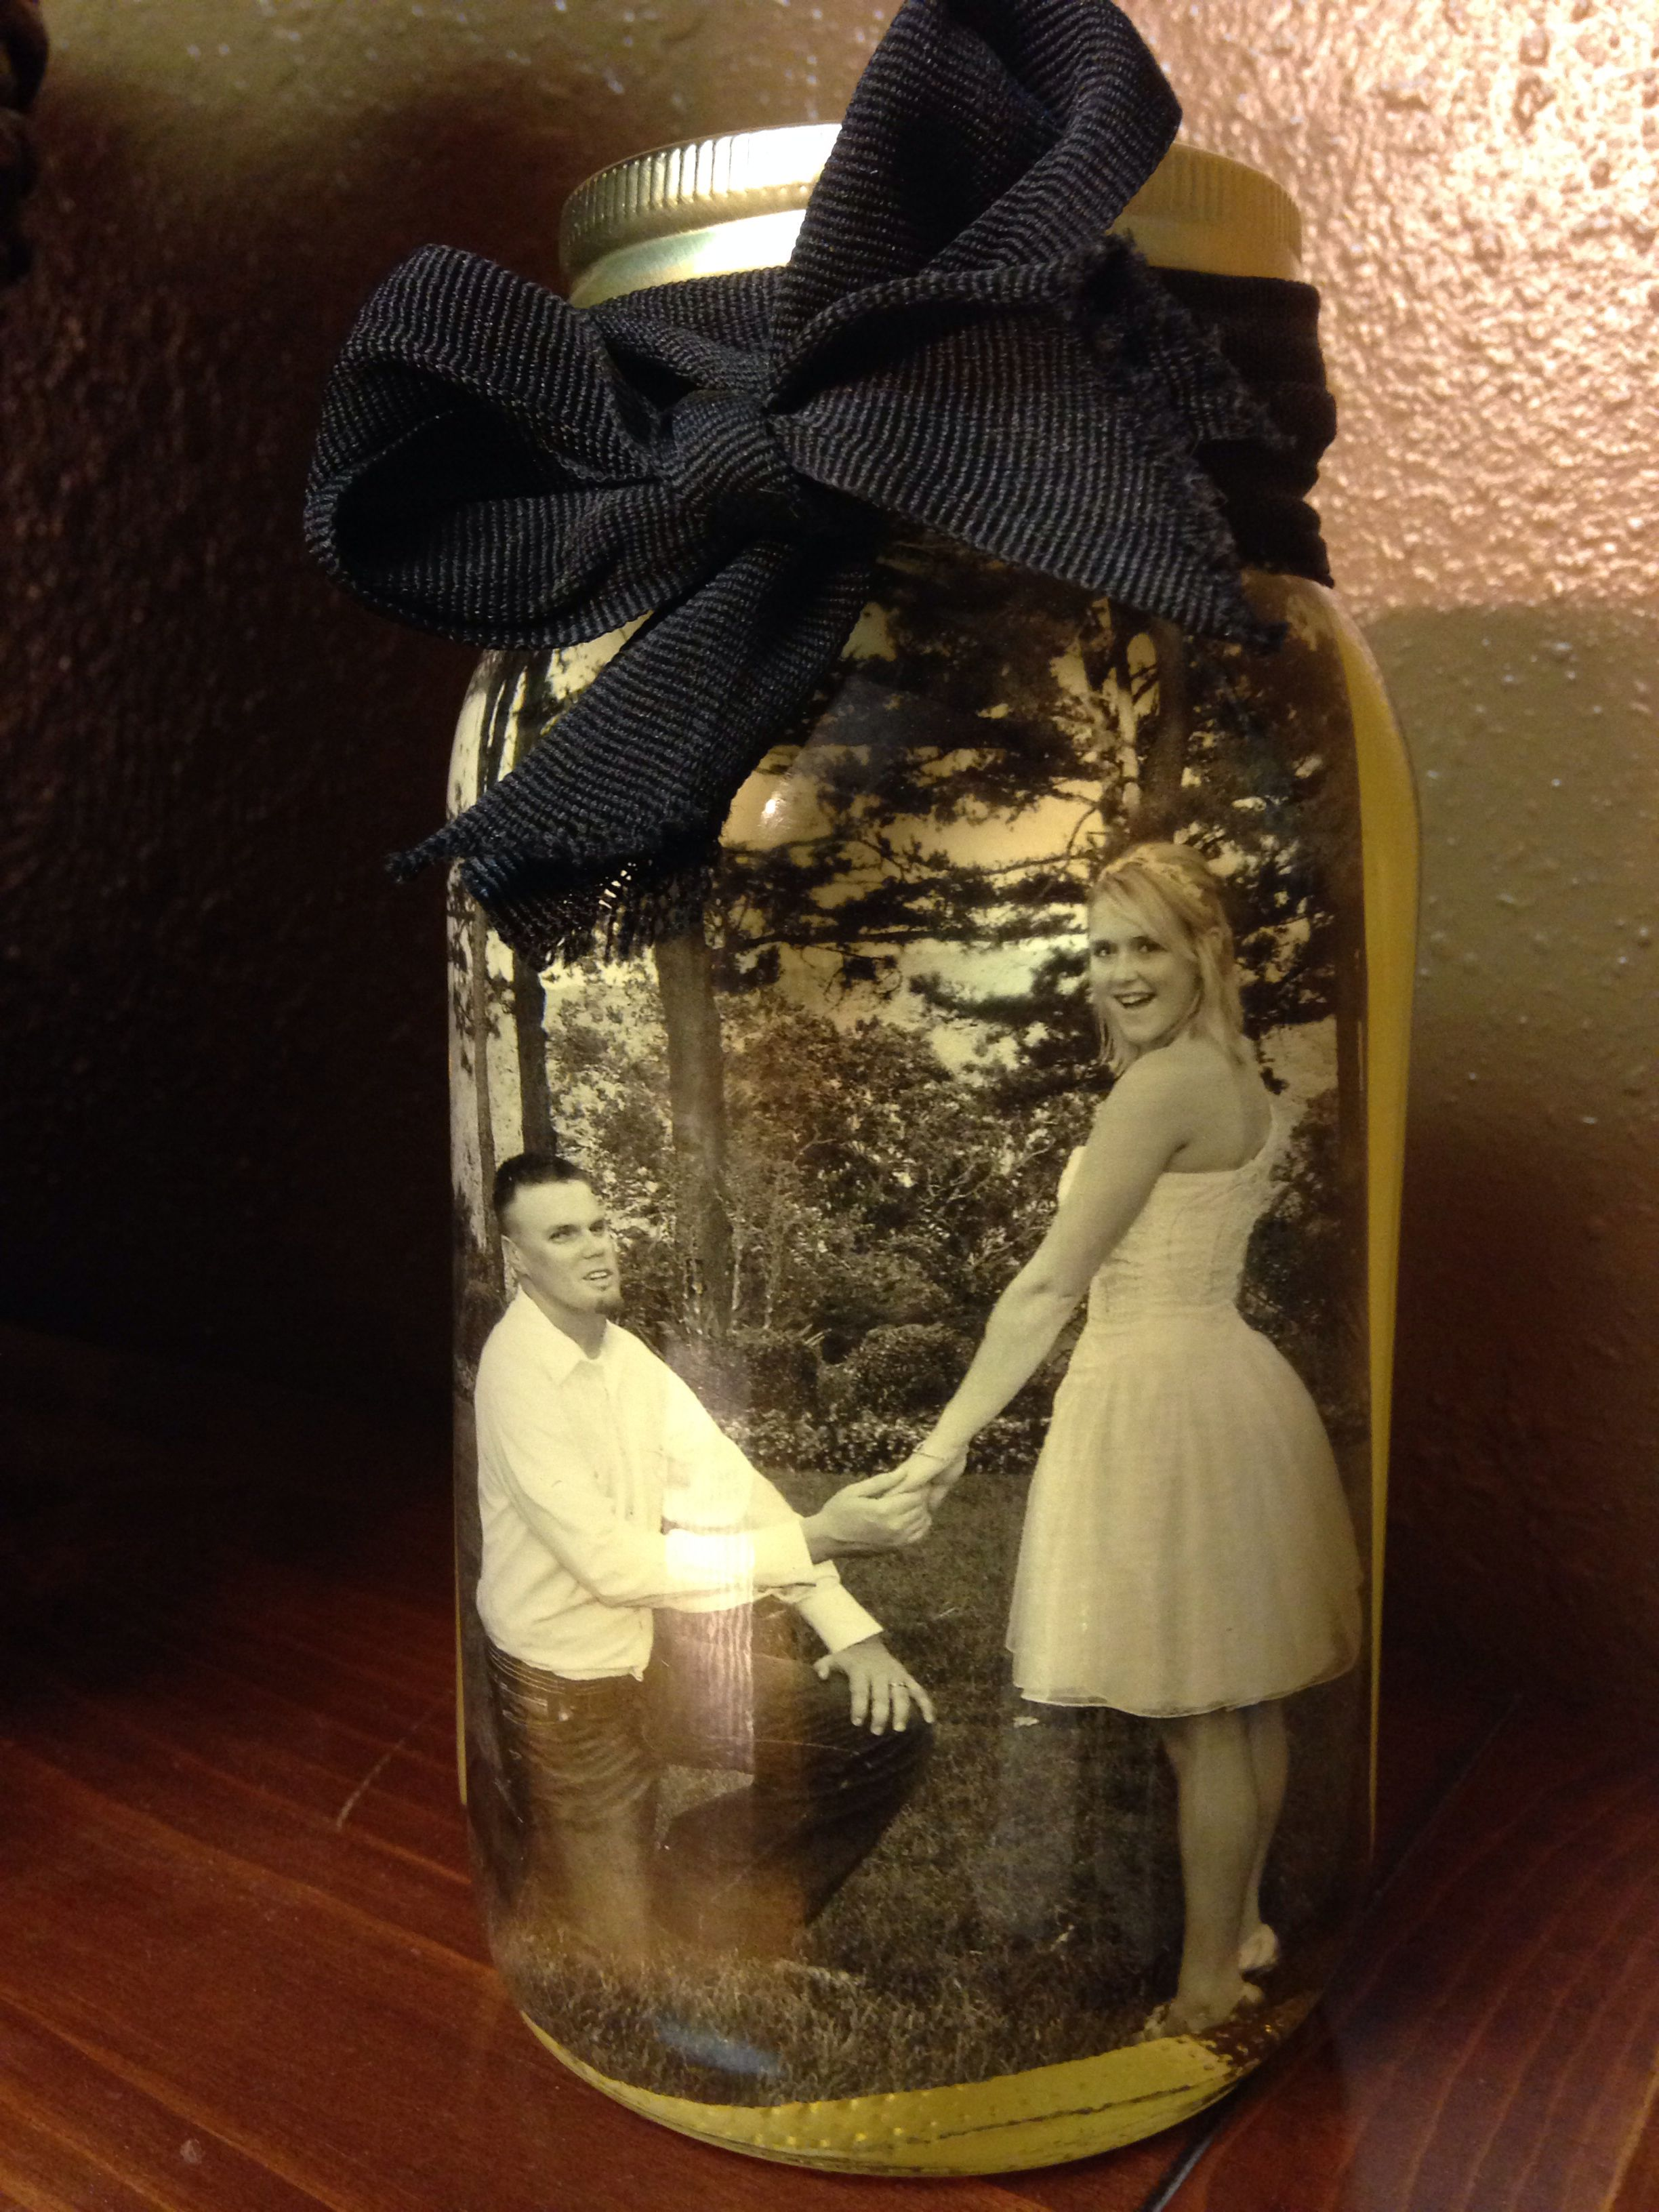 DIY Mason Jar Picture: All you need is a jar, picture, and ...